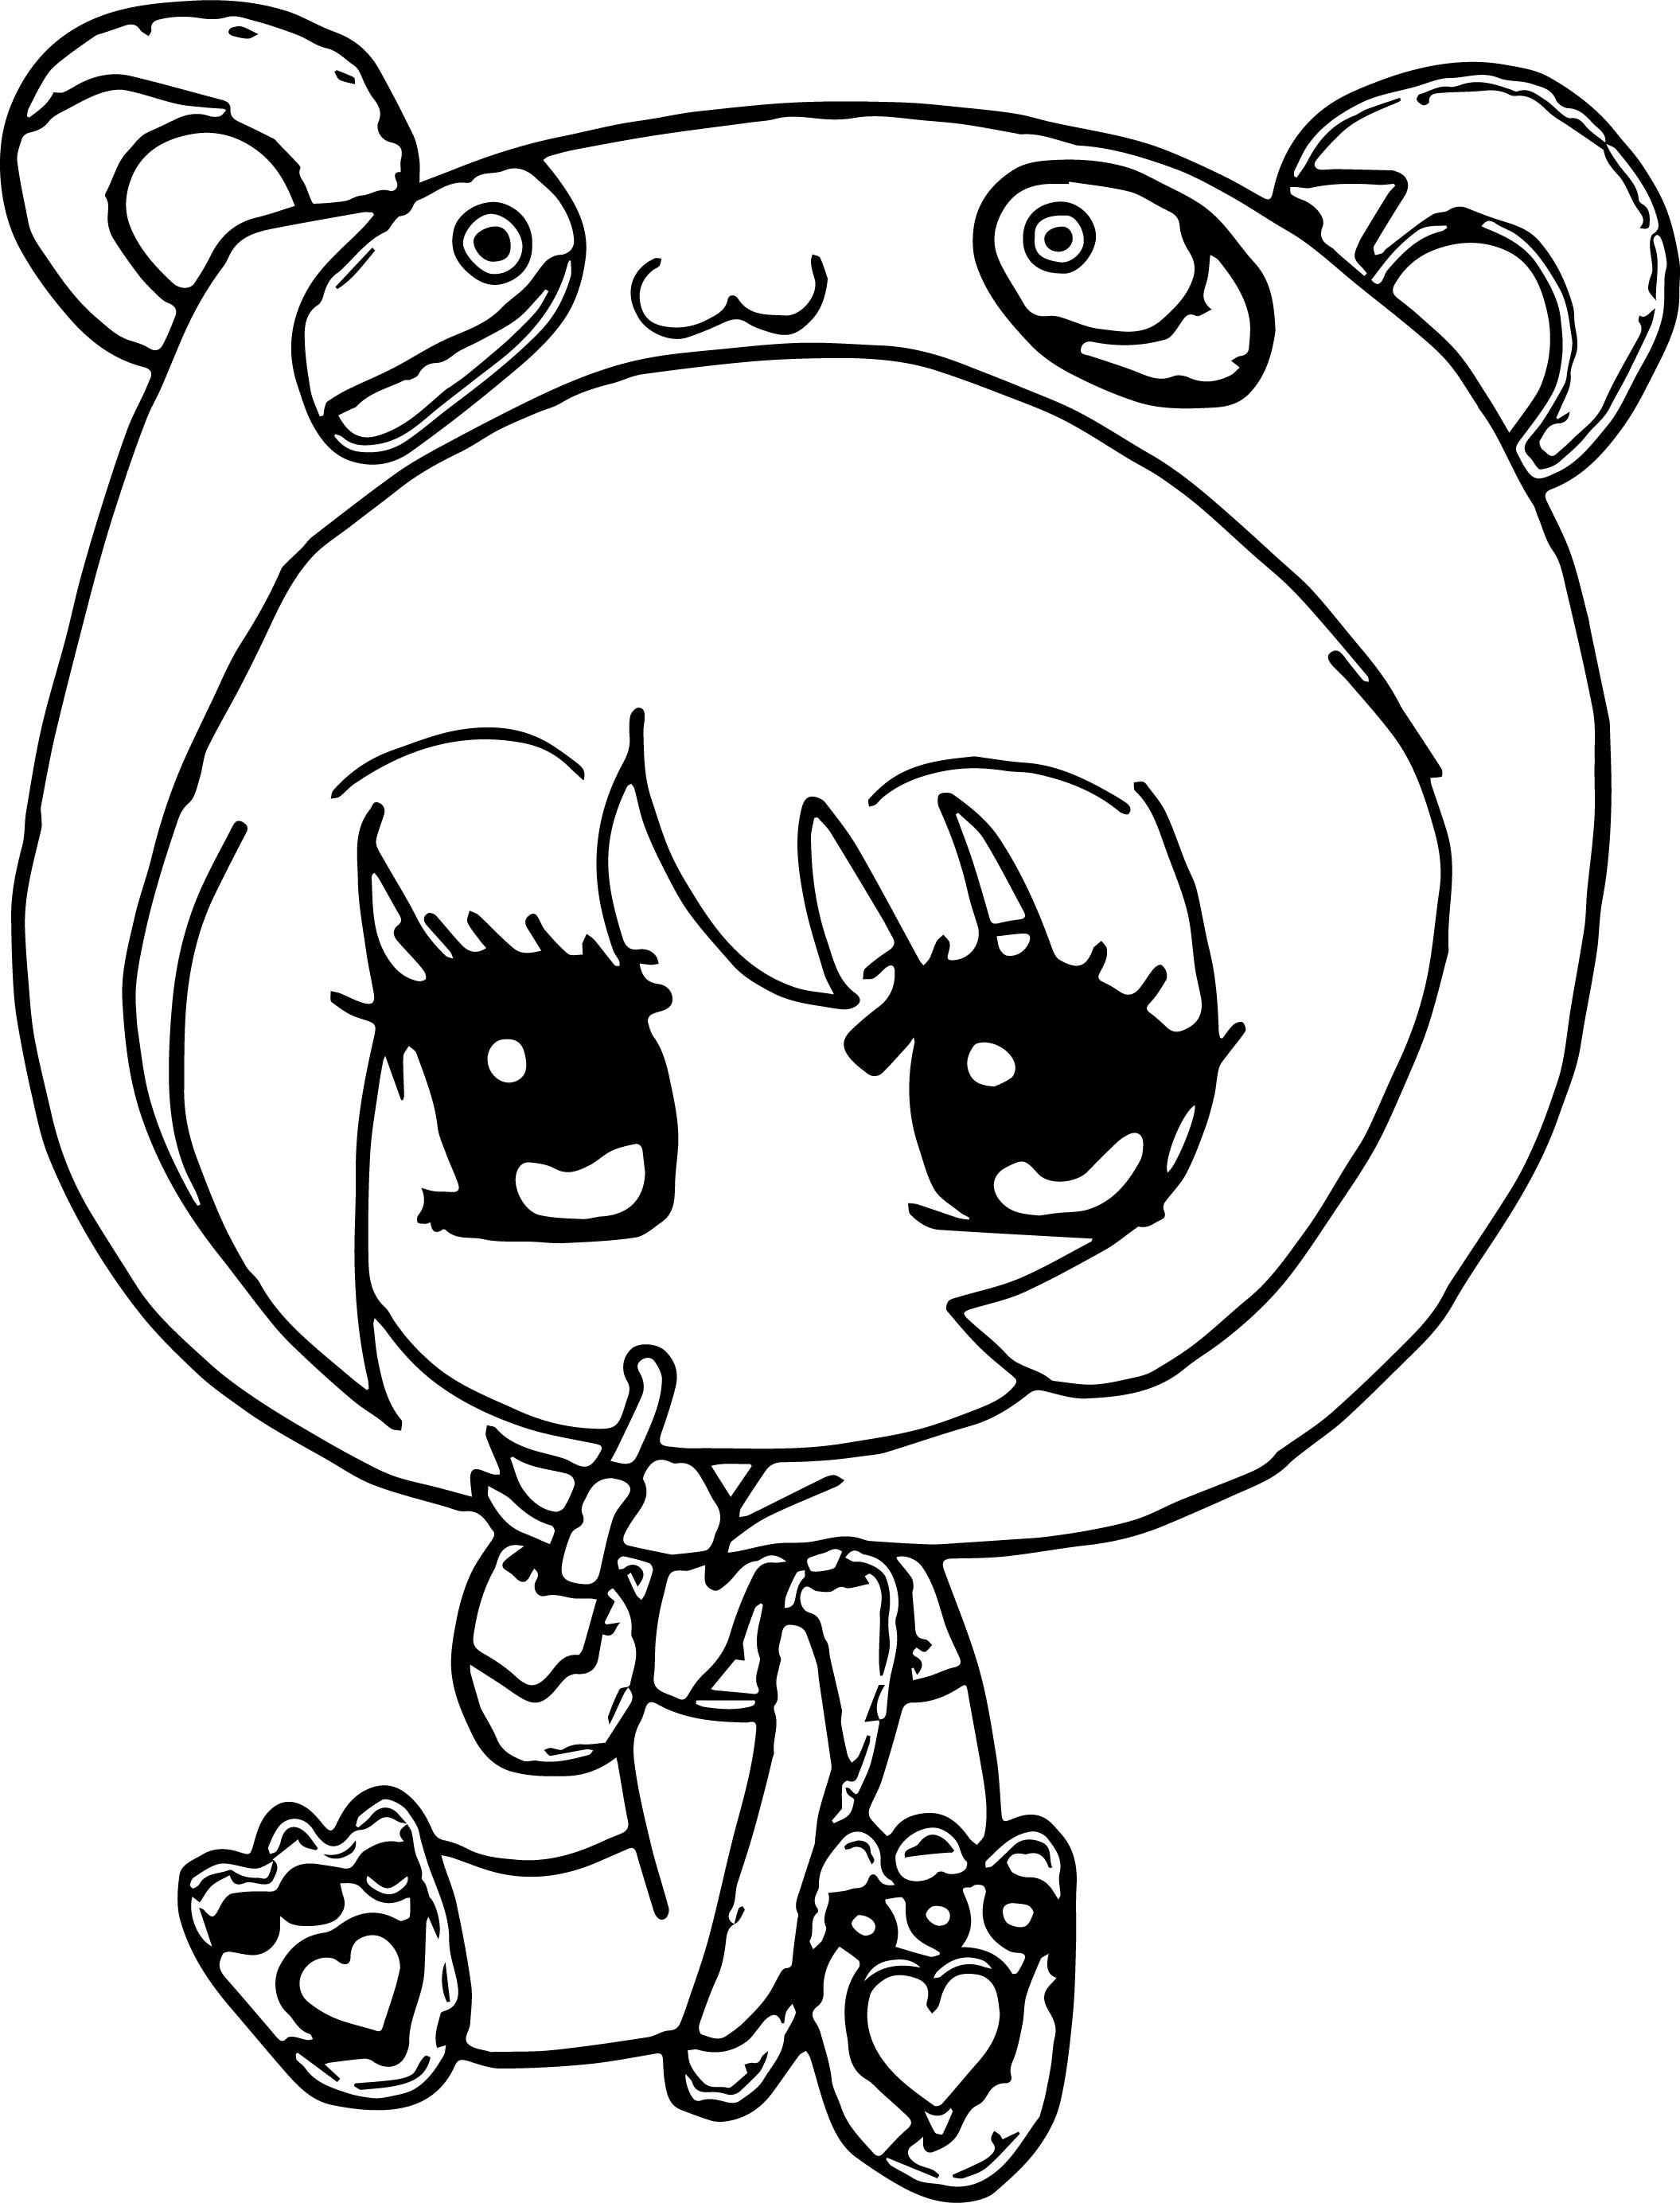 Chibi Girl Coloring Pages  Anime Chibi Girl Coloring Pages